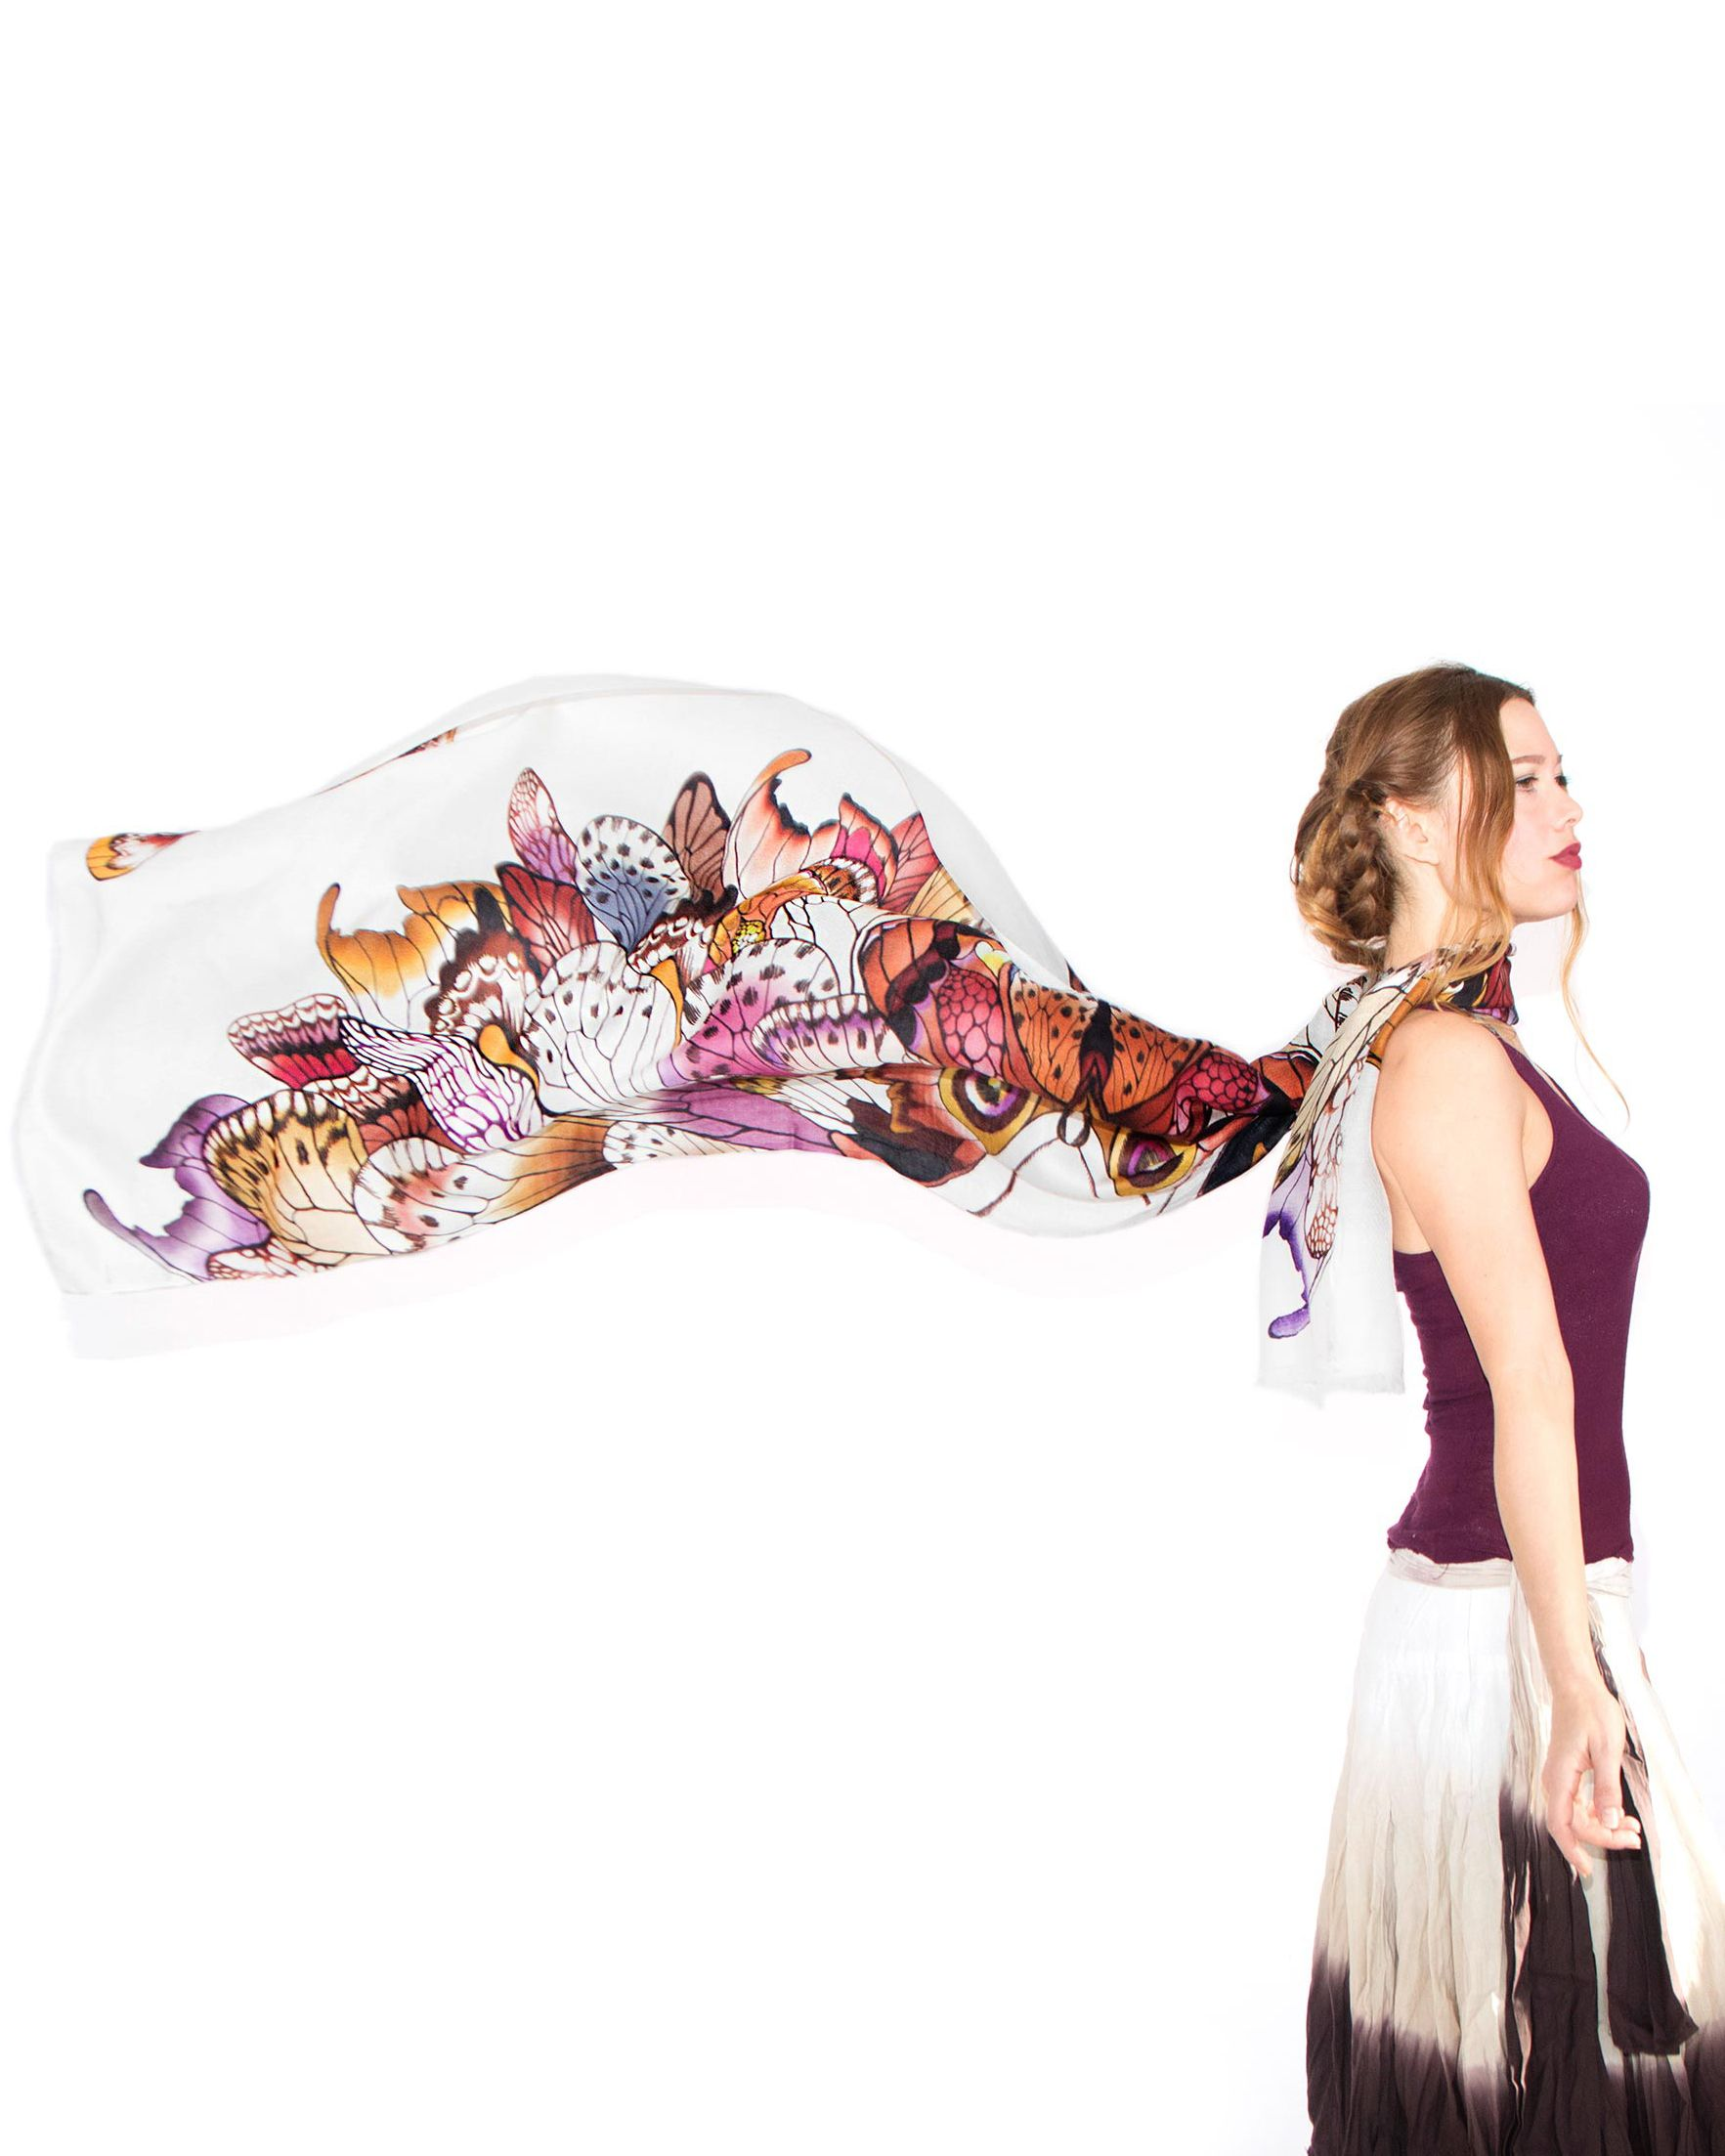 Fly away butterfly! This hand painted silk scarf is a summer must have.